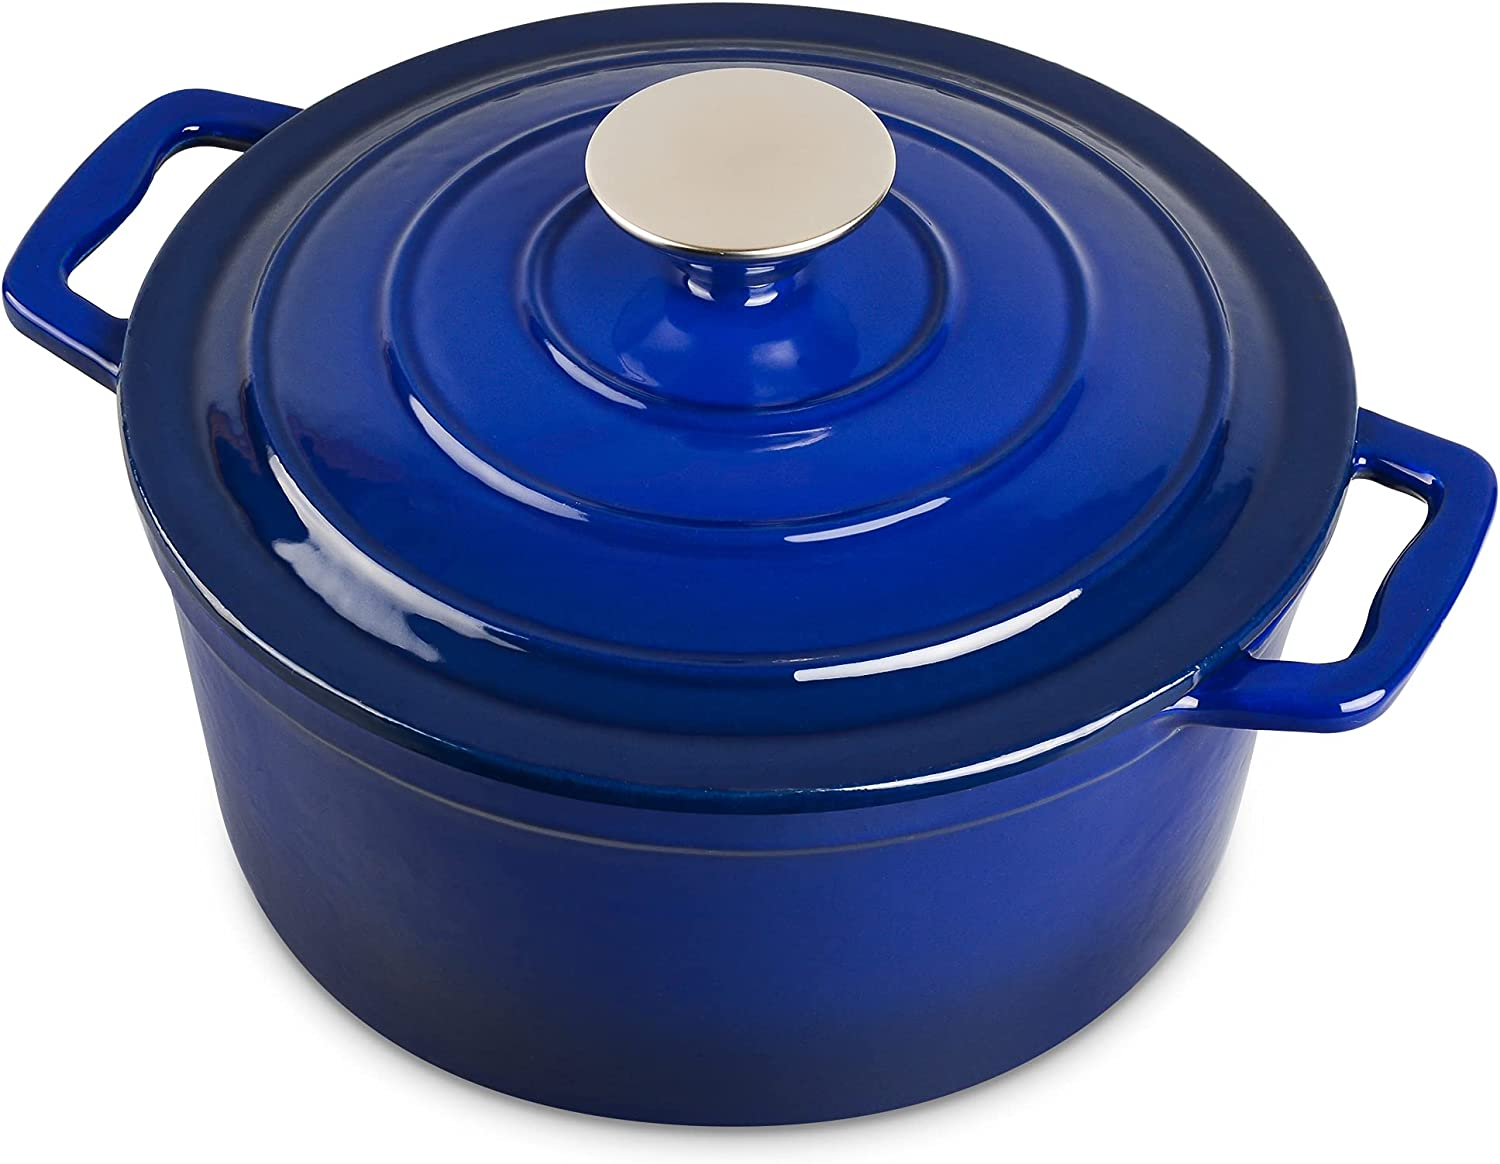 3 Quart Non-Stick Enamel Cast Iron Suit Dutch Oven Lid New Orleans Mall Pot Chicago Mall with